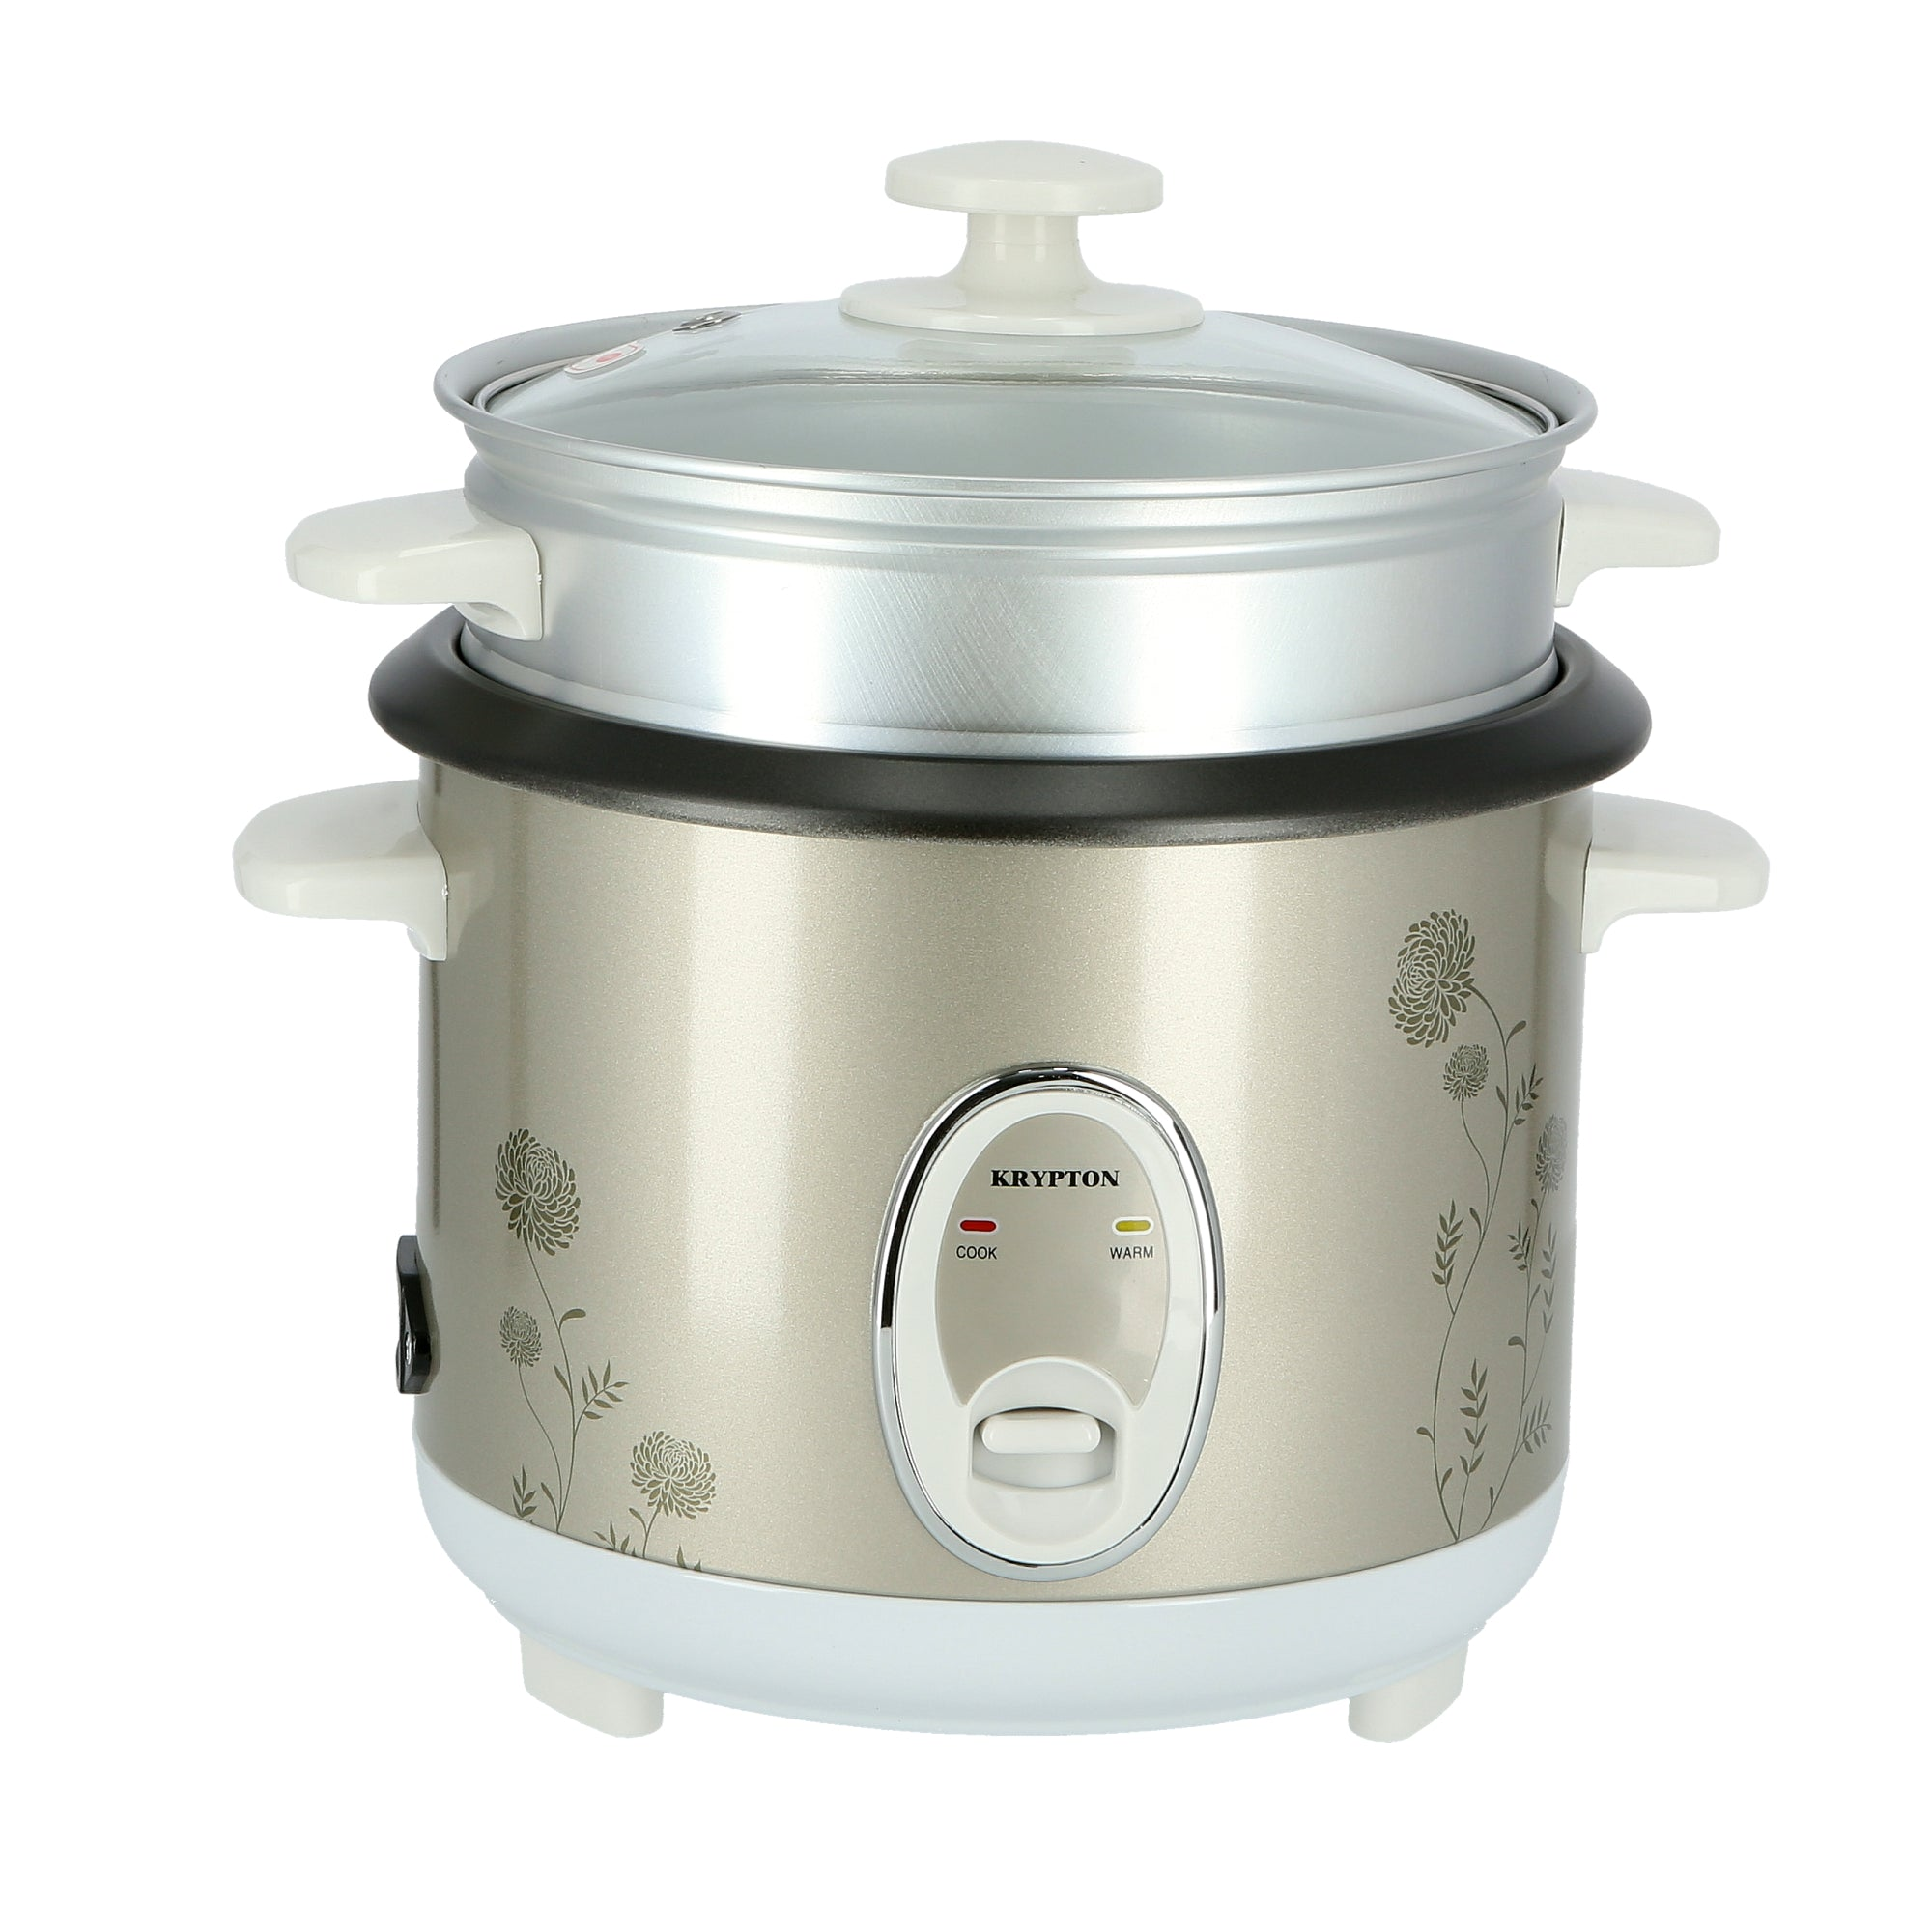 400W 1 L Rice Cooker with Steamer | Non-Stick Inner Pot, Automatic Cooking, Easy Cleaning, High-Temperature Protection - Make Rice & Steam Healthy Food & Vegetables - 2 Year Warranty